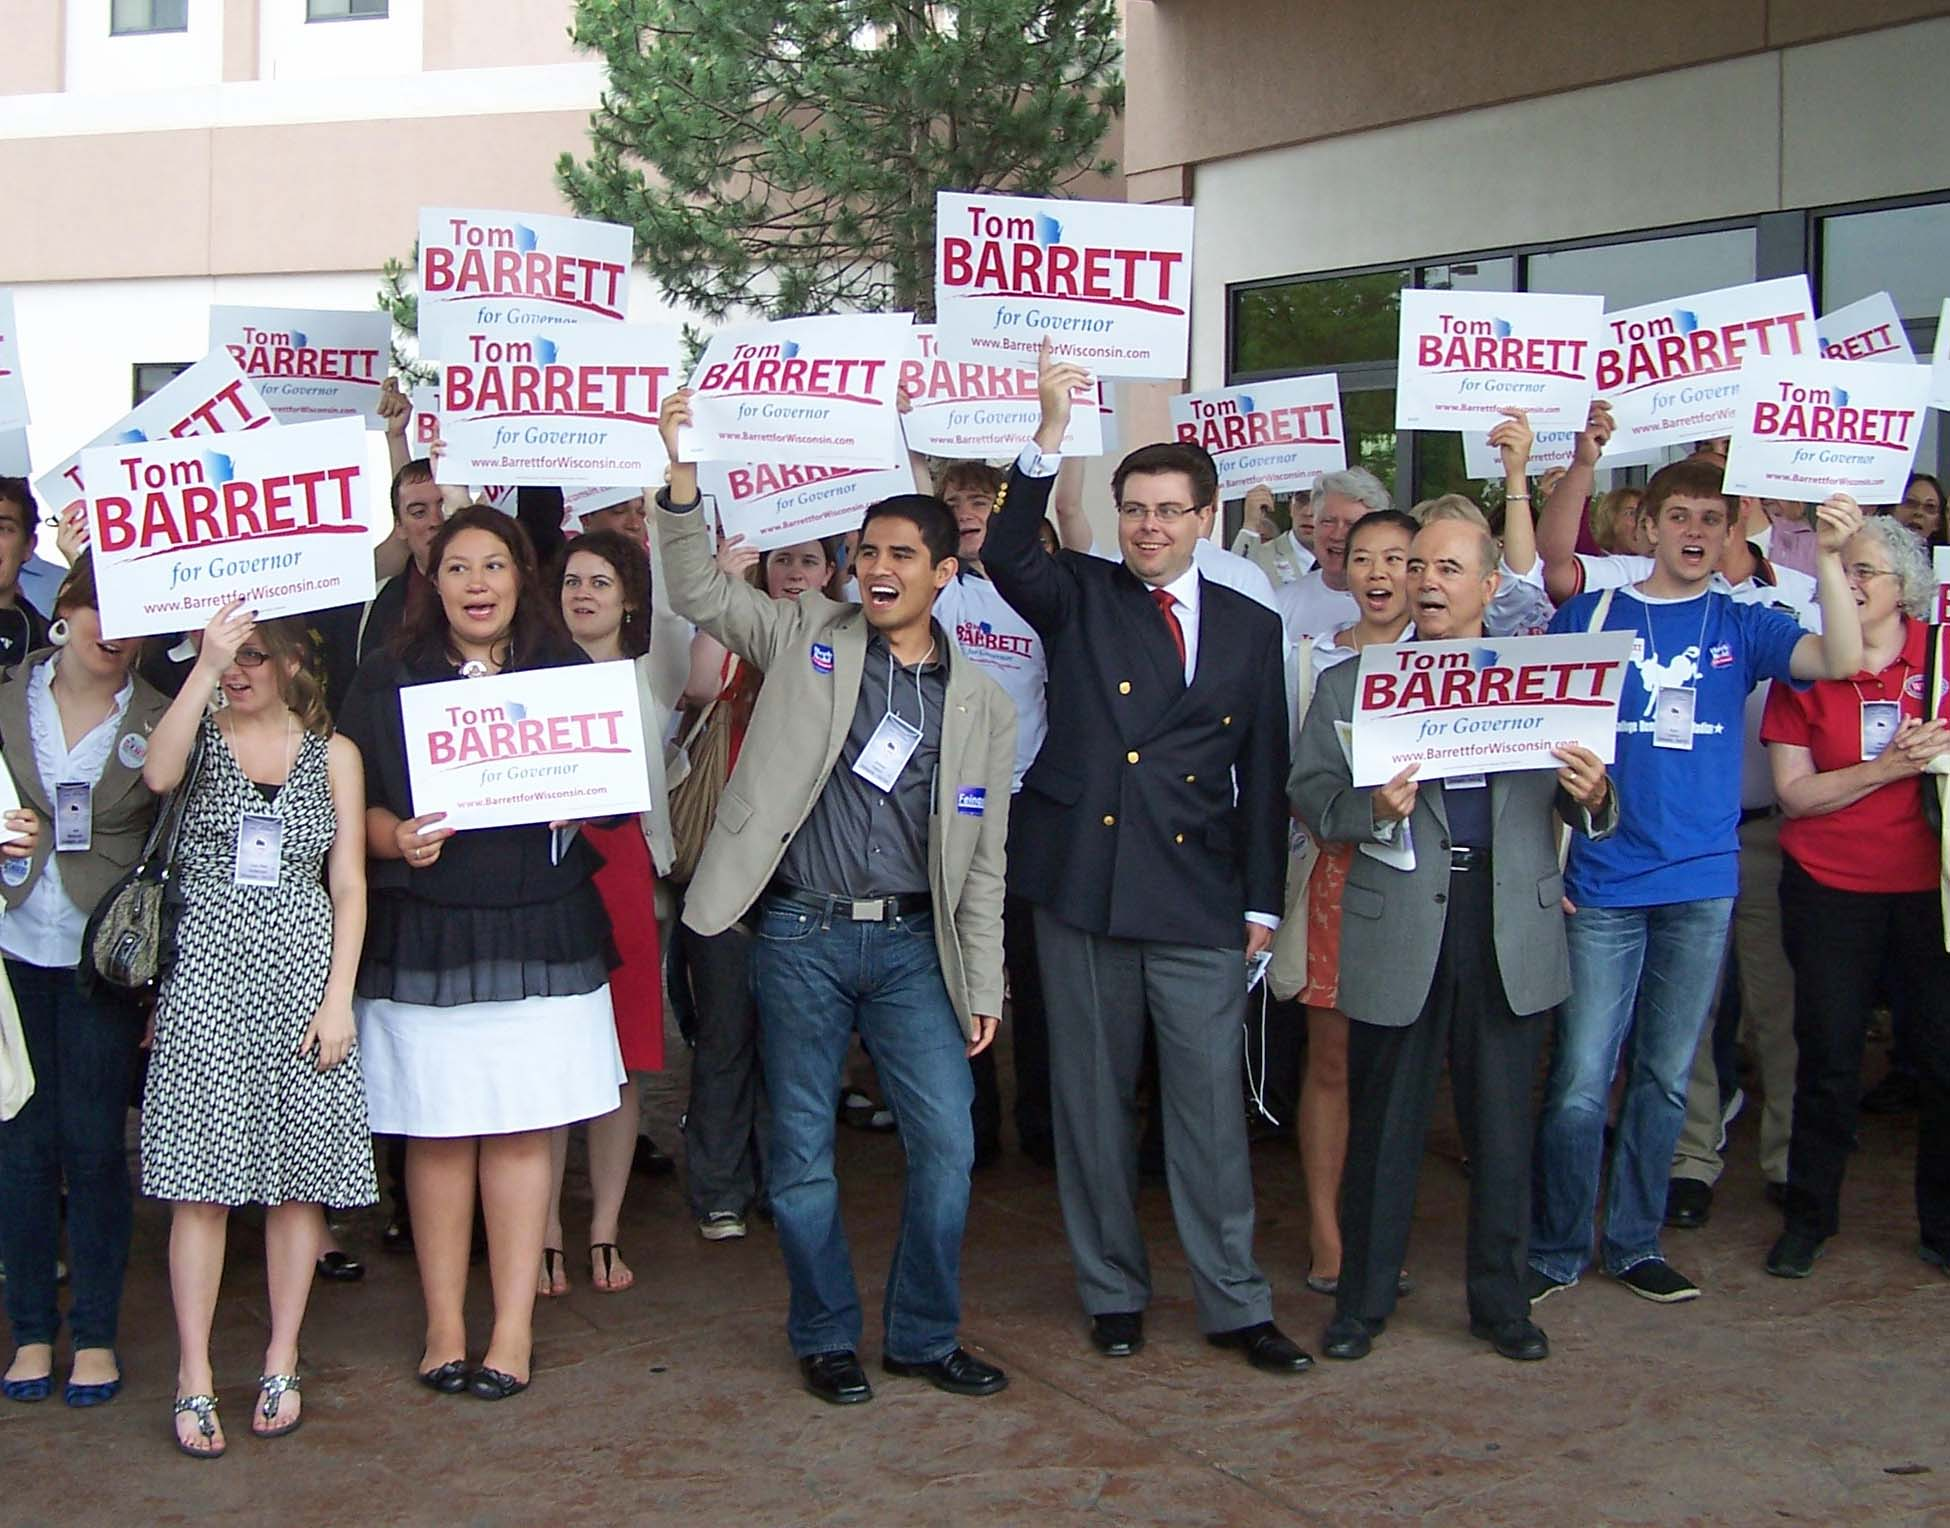 Barrett backers at convention PHOTO:WRN